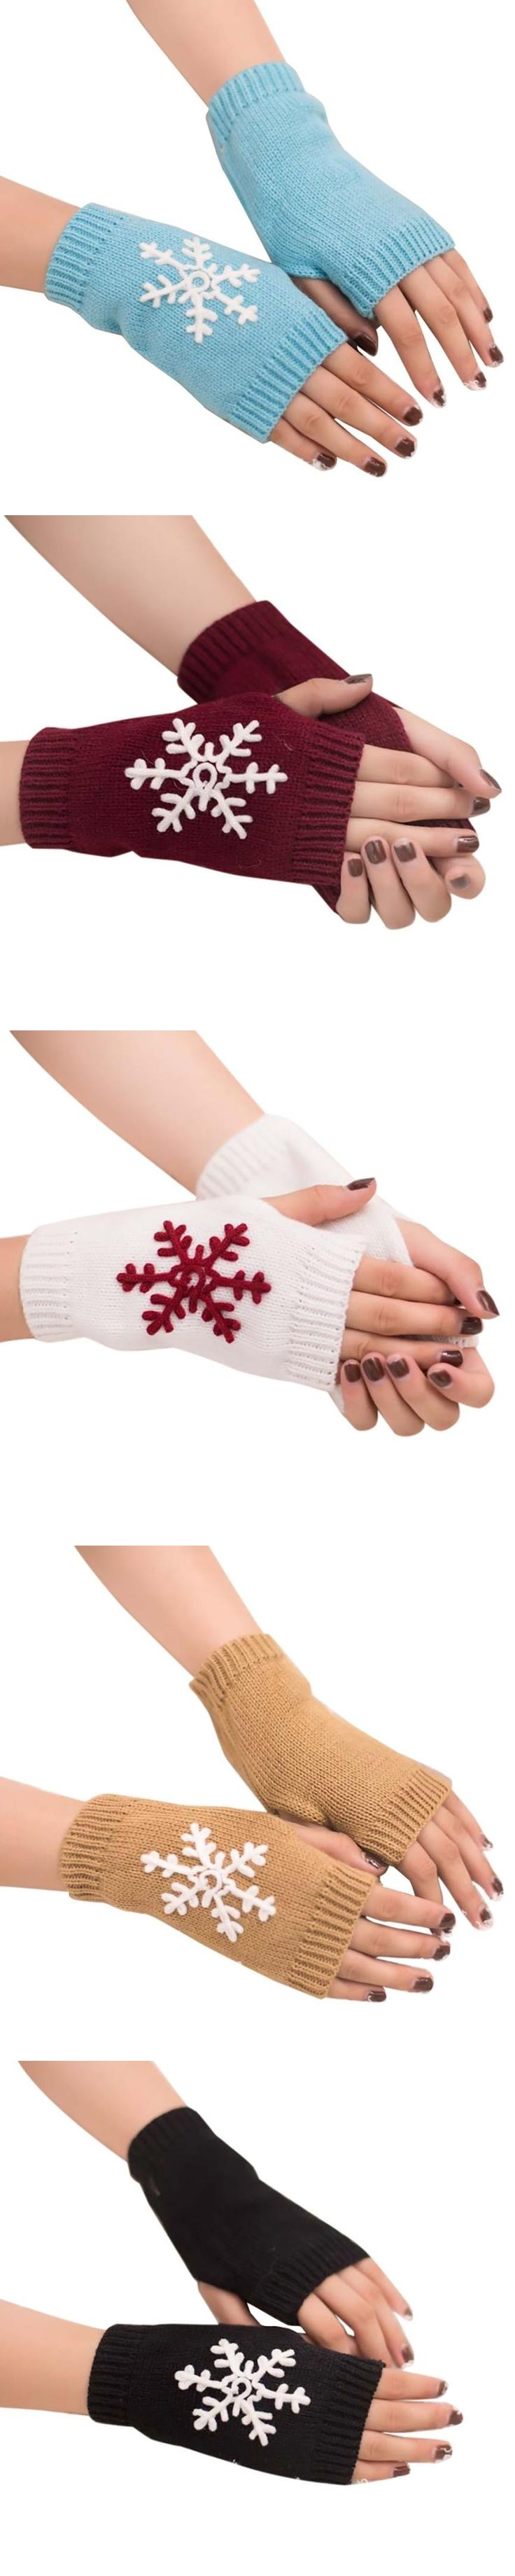 Women Girl Knitted Arm Fingerless Warm Winter Gloves Soft Warm Mittens Fingerless Gloves without fingers Eldiven Guantes mujer#1